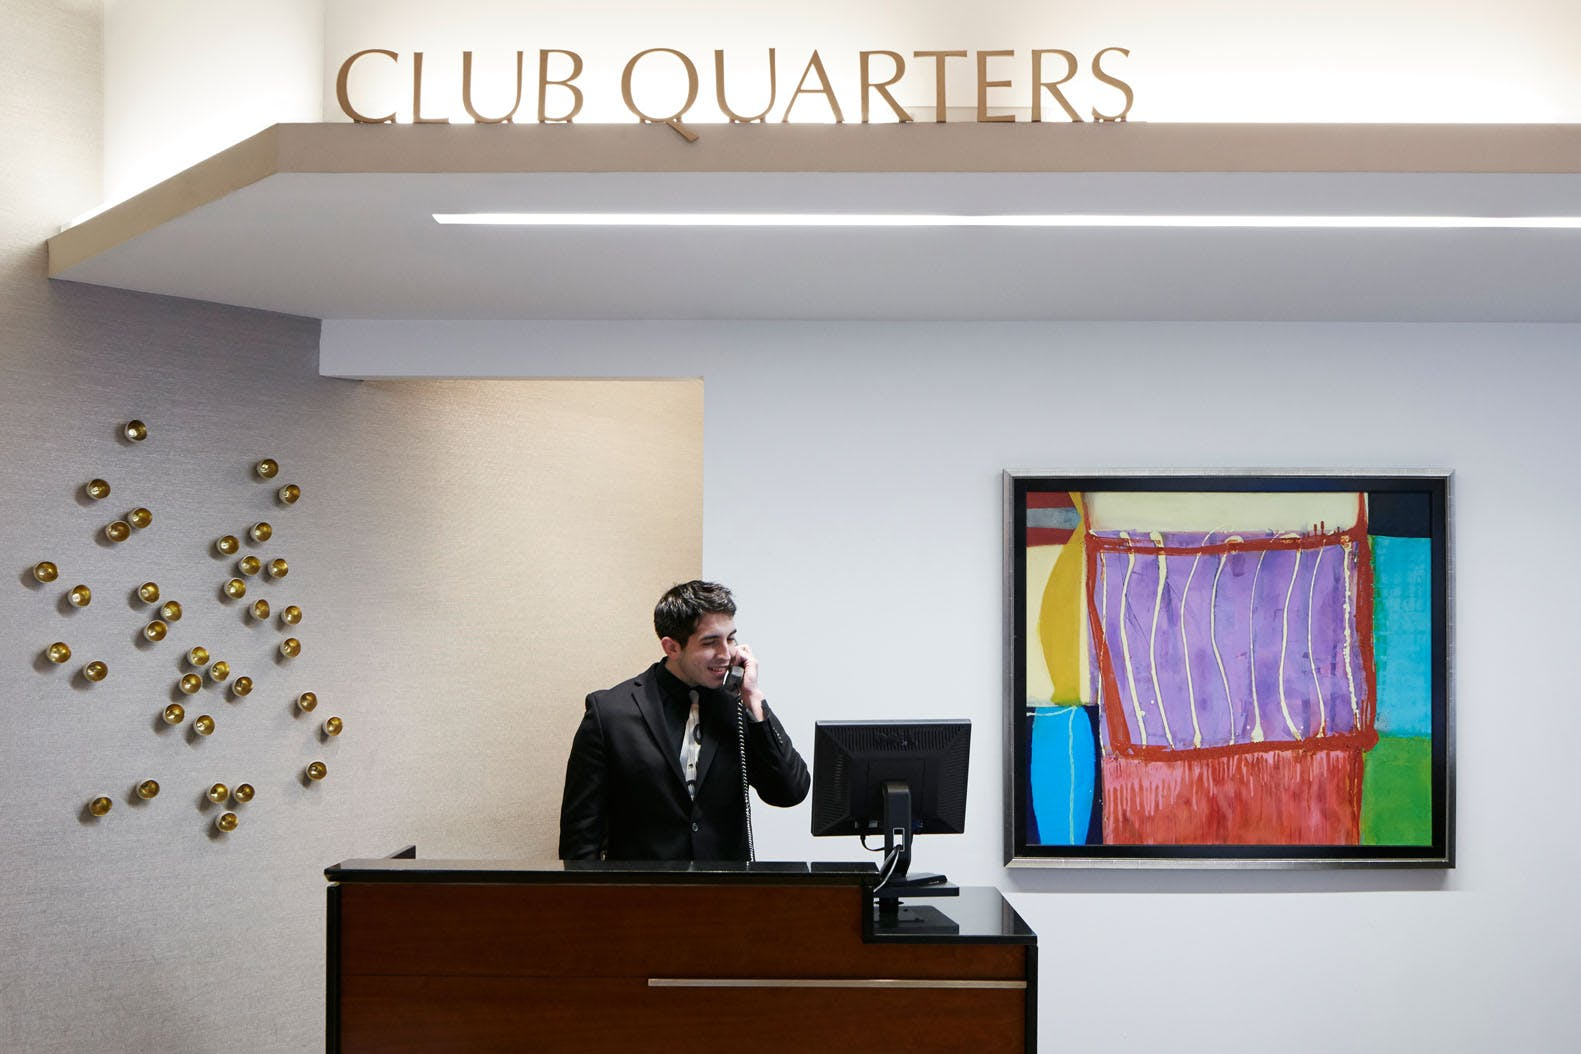 Member Service Desk at Club Quarters Hotel, Wacker at Michigan